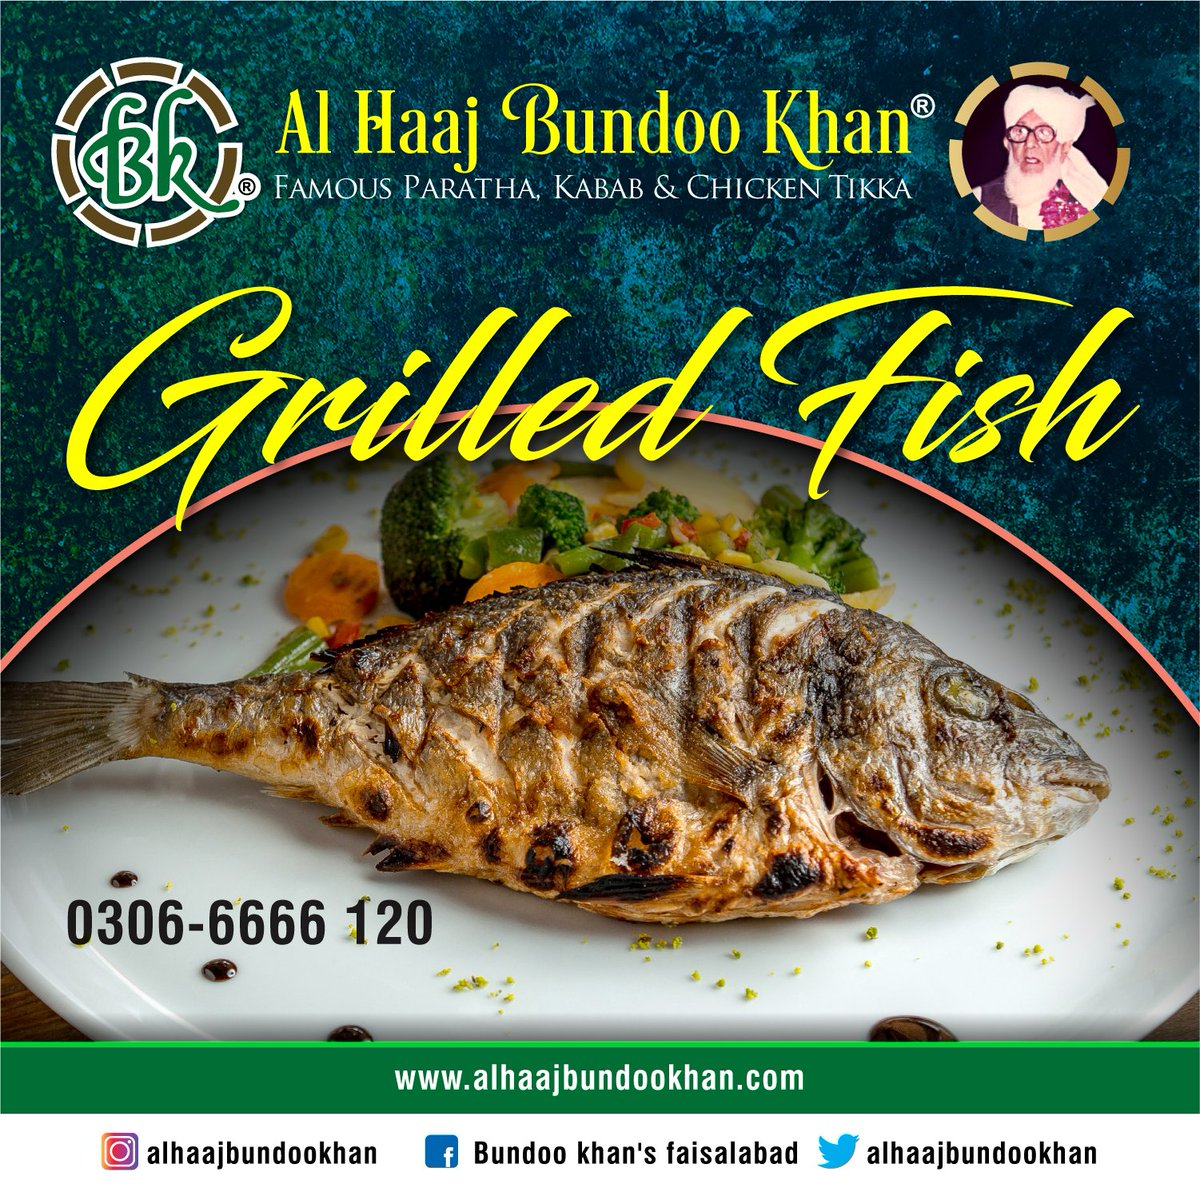 Alhaaj Bundoo Khan On Twitter Al Haaj Bundoo Khan Home Delivery Available Https T Co Znriaf5rpp Food Delivery Home Tasty Chicken Fish Grilled Rohu Behari Tikka Bonelessfish Bonefish Https T Co 1haihtcmt2